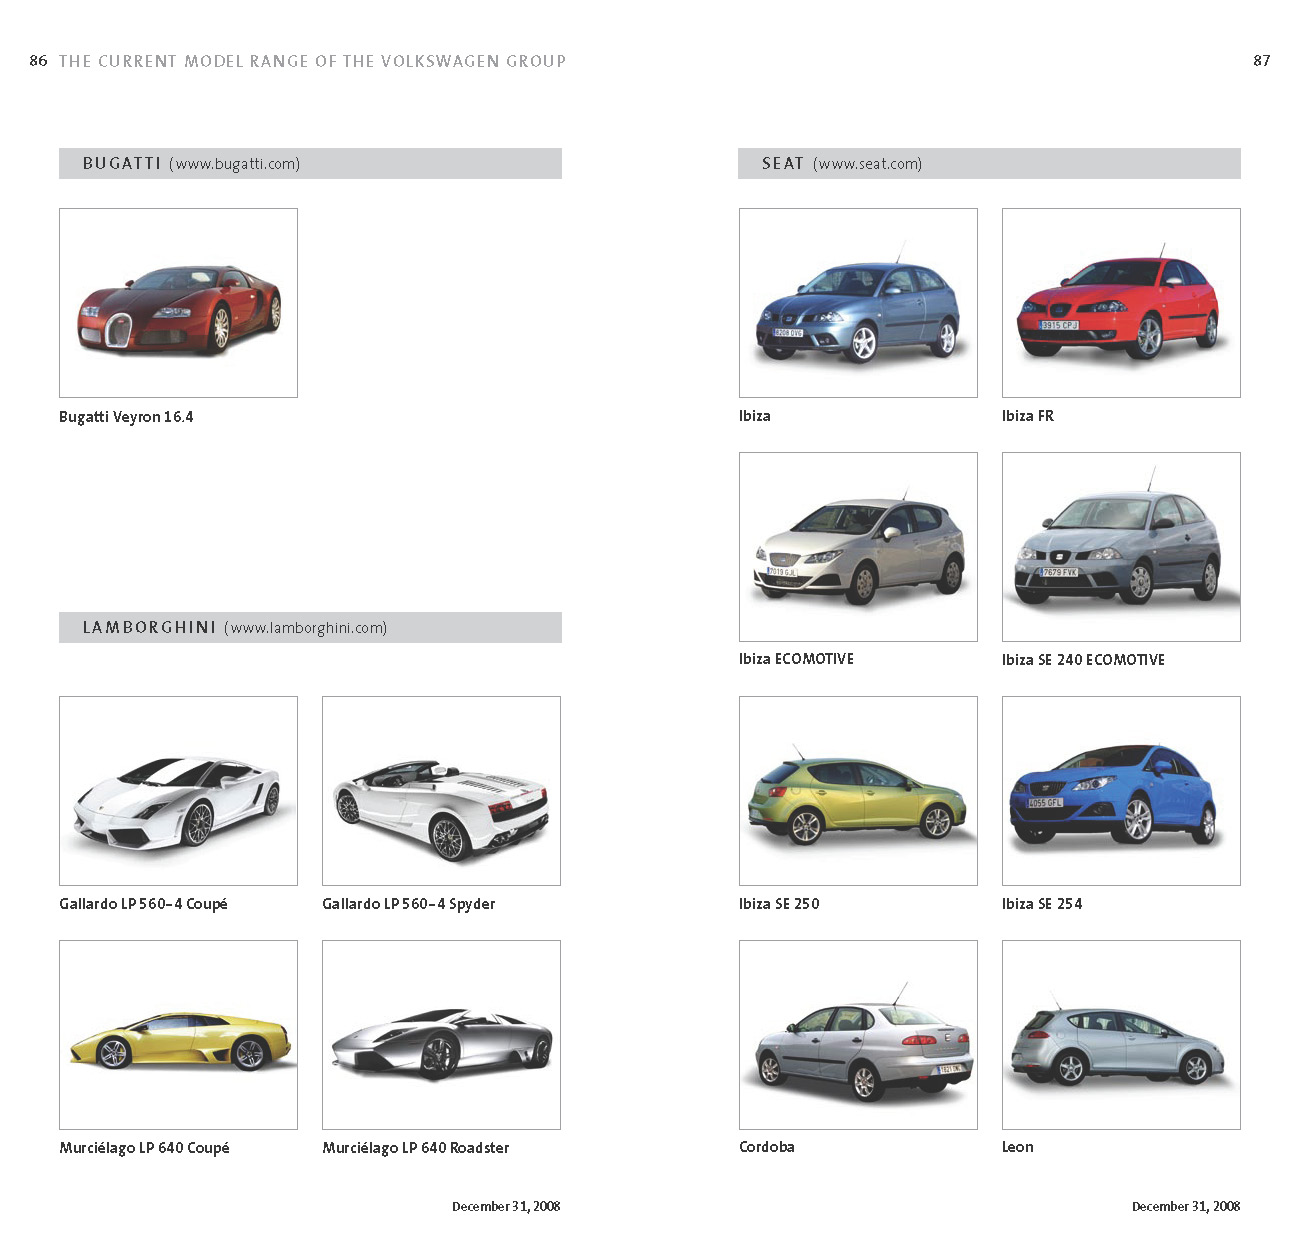 SPORT CARS 2011: Complete List of VW Group\'s 178 Models Sold Worldwide